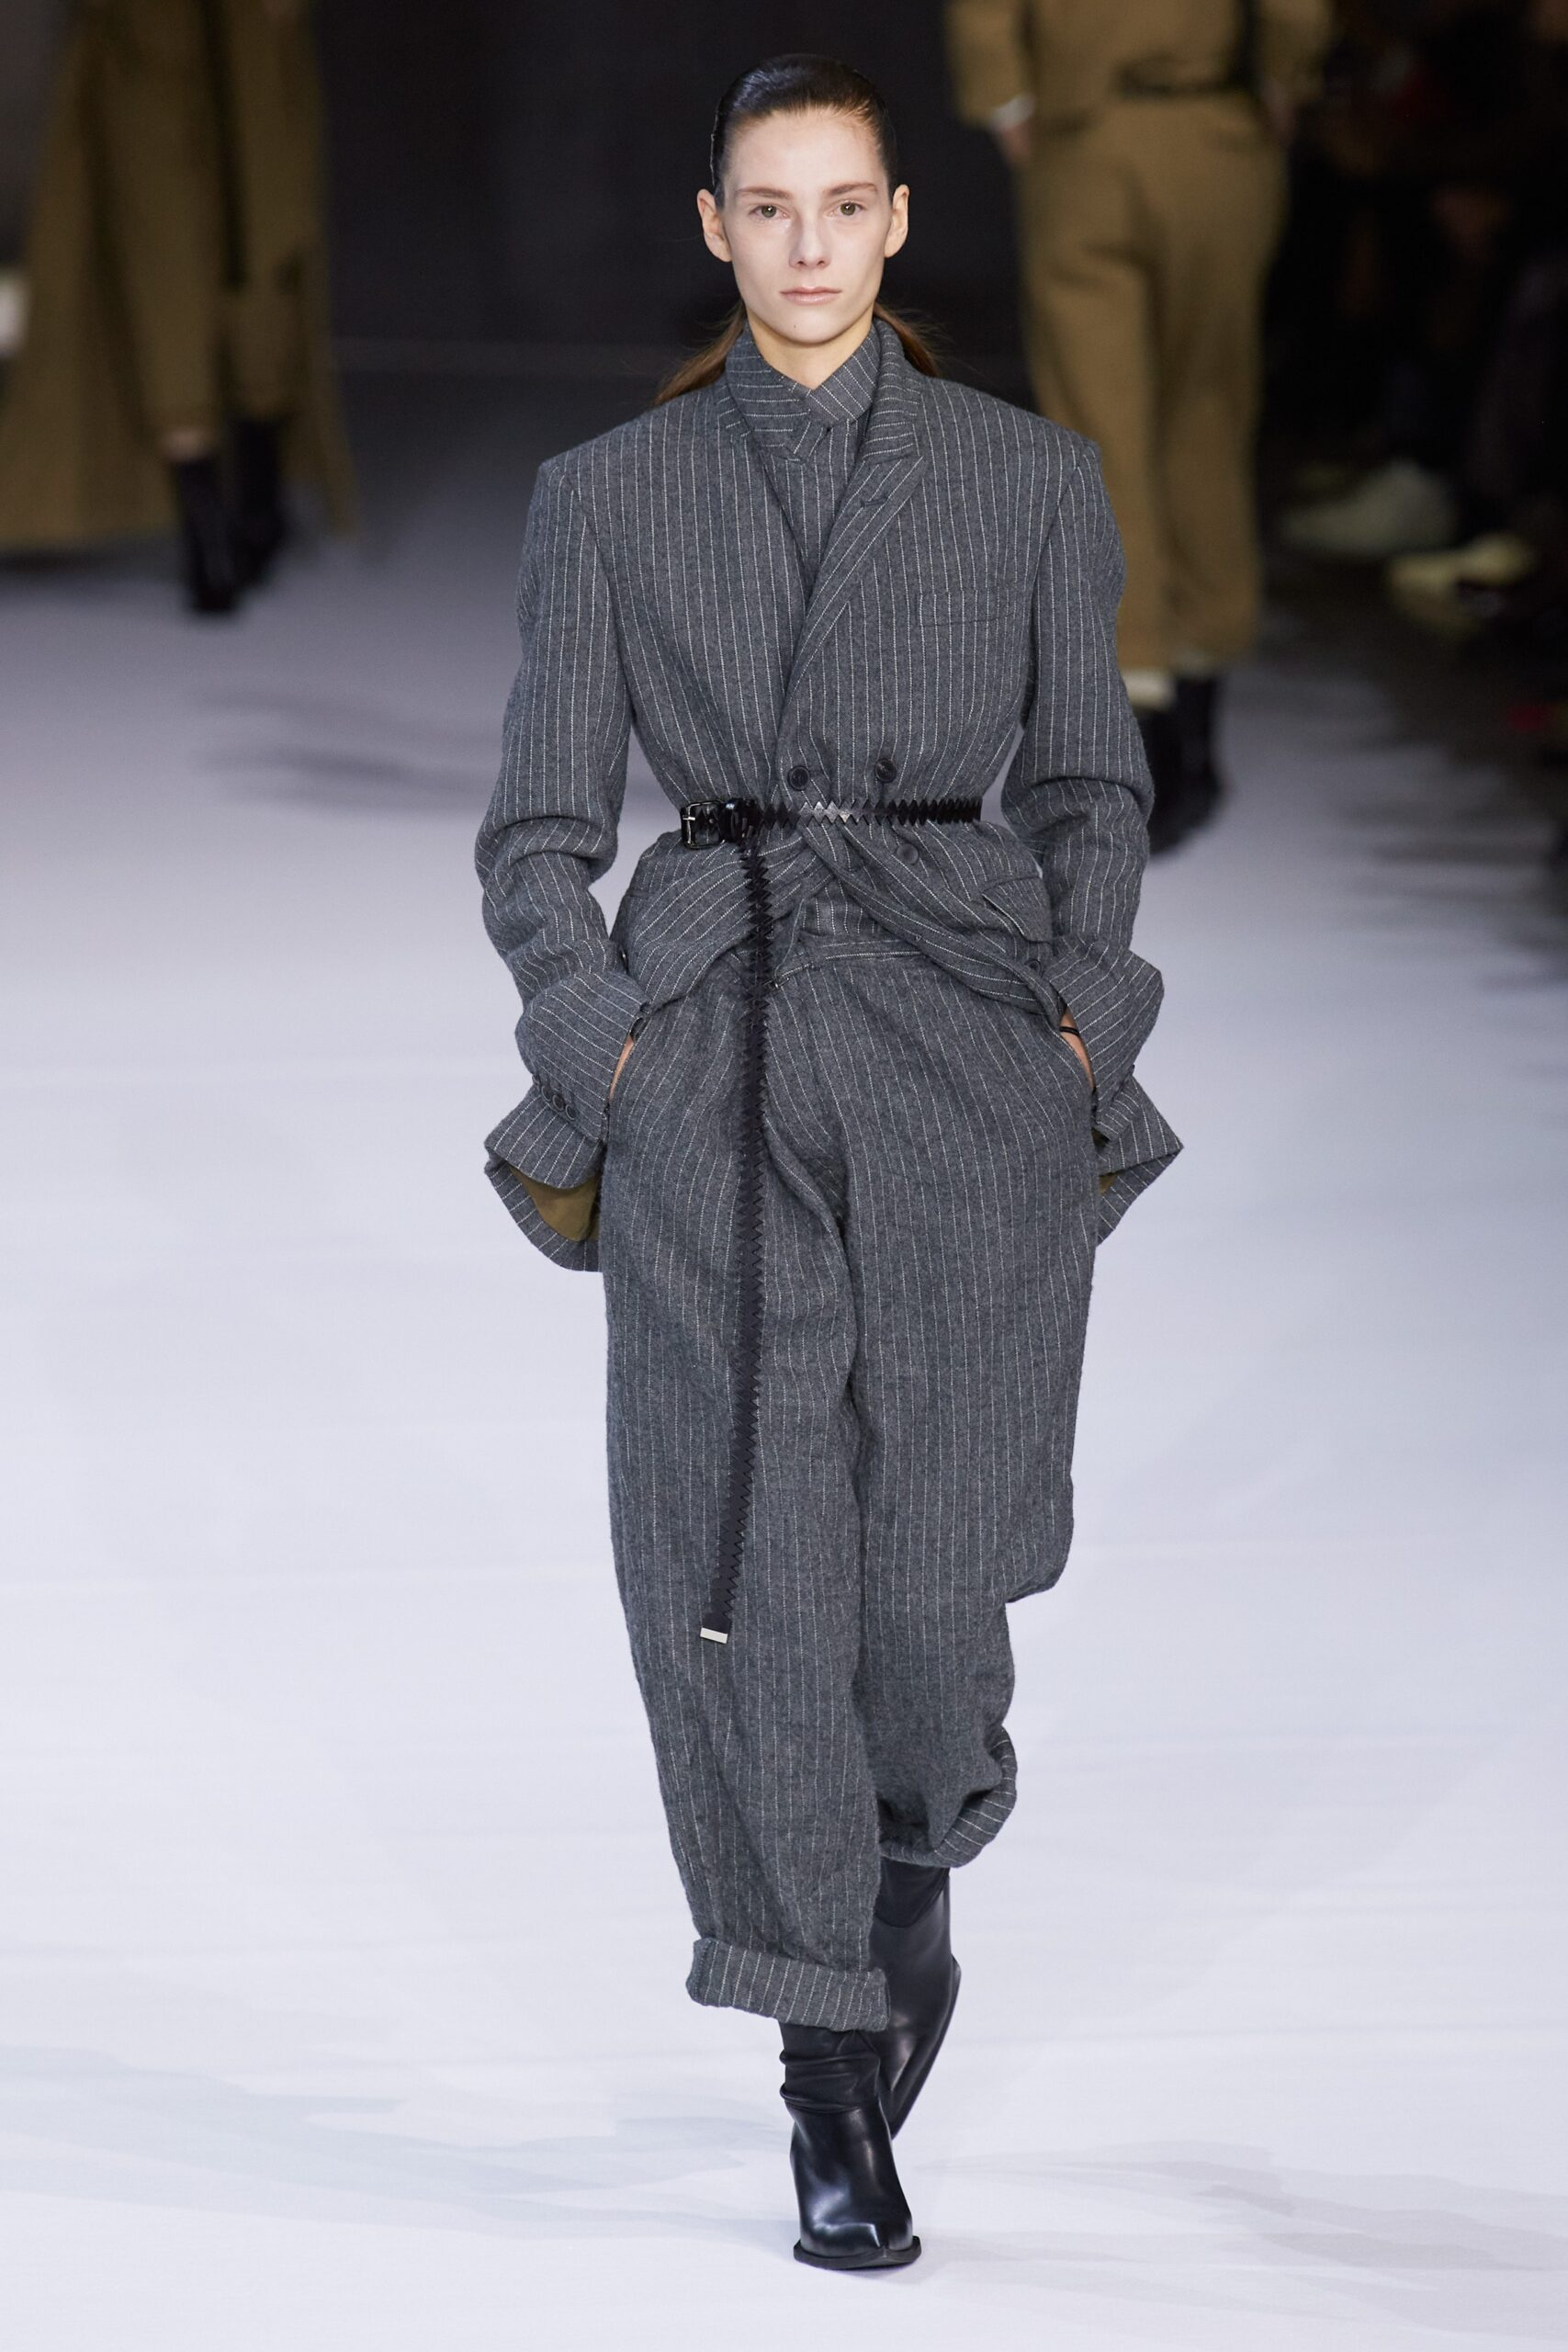 Haider Ackermann Fall 2020 ready-to-wear